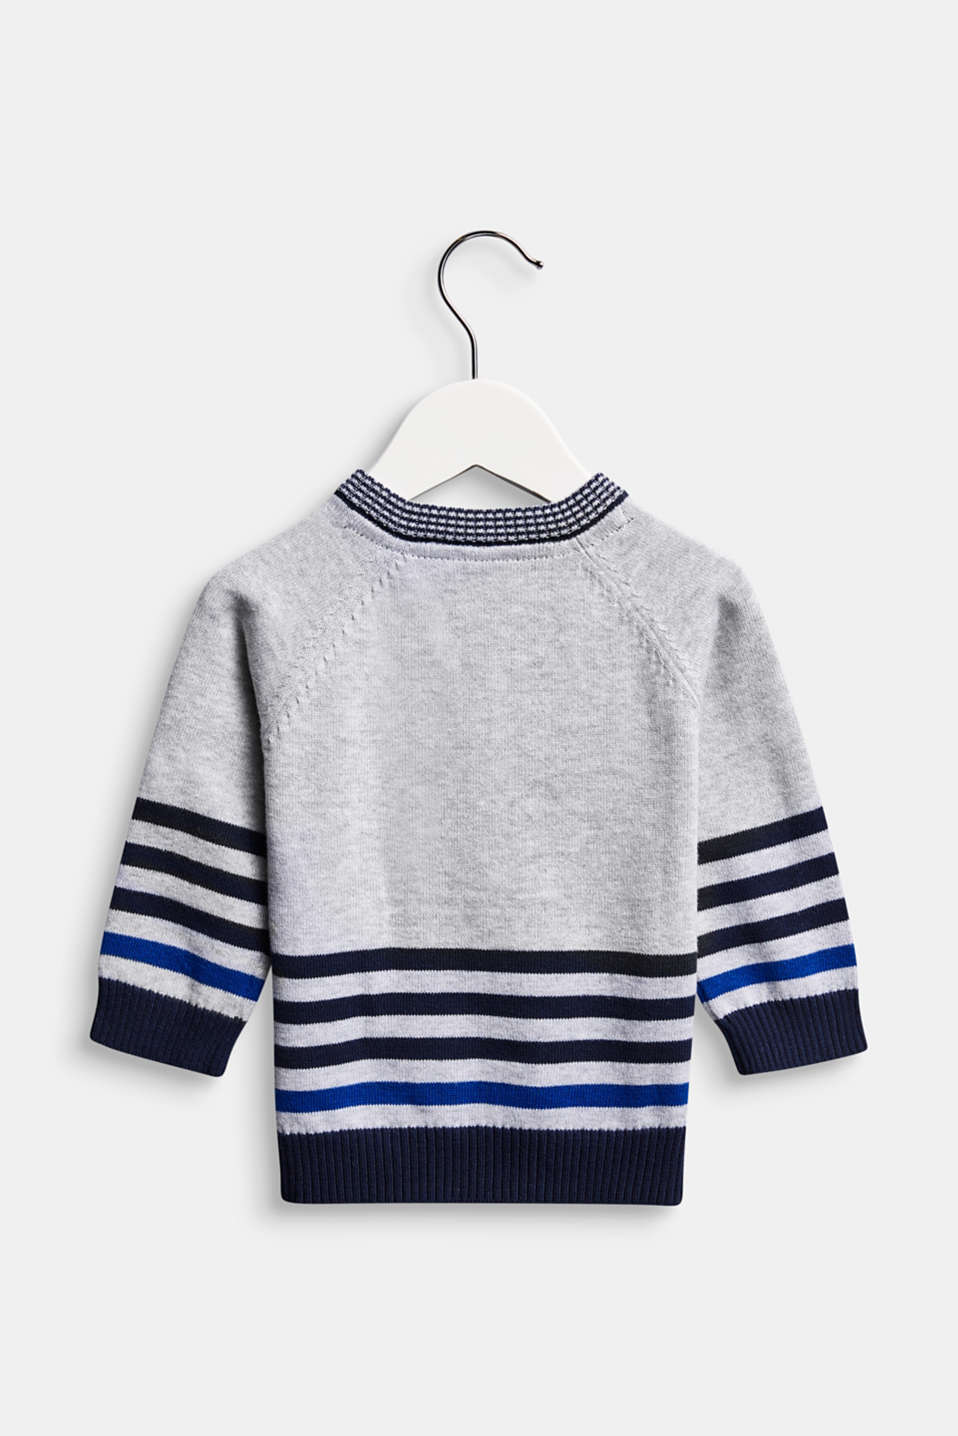 Jumper with motif and stripes, 100% cotton, LCHEATHER SILVER, detail image number 1